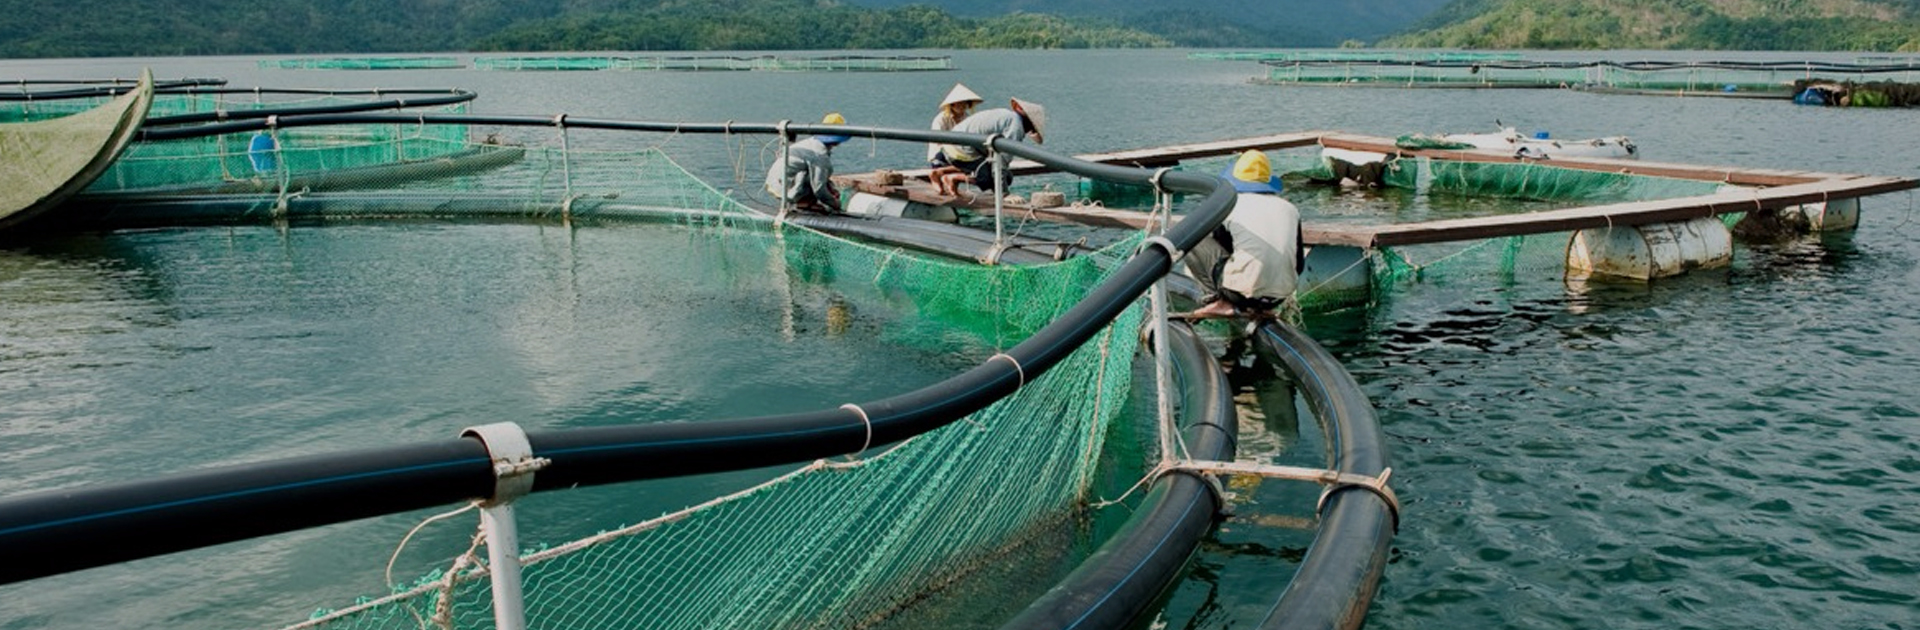 Aqua Netting, Fish cage Netting, Fishery Nets, Aqua Nets